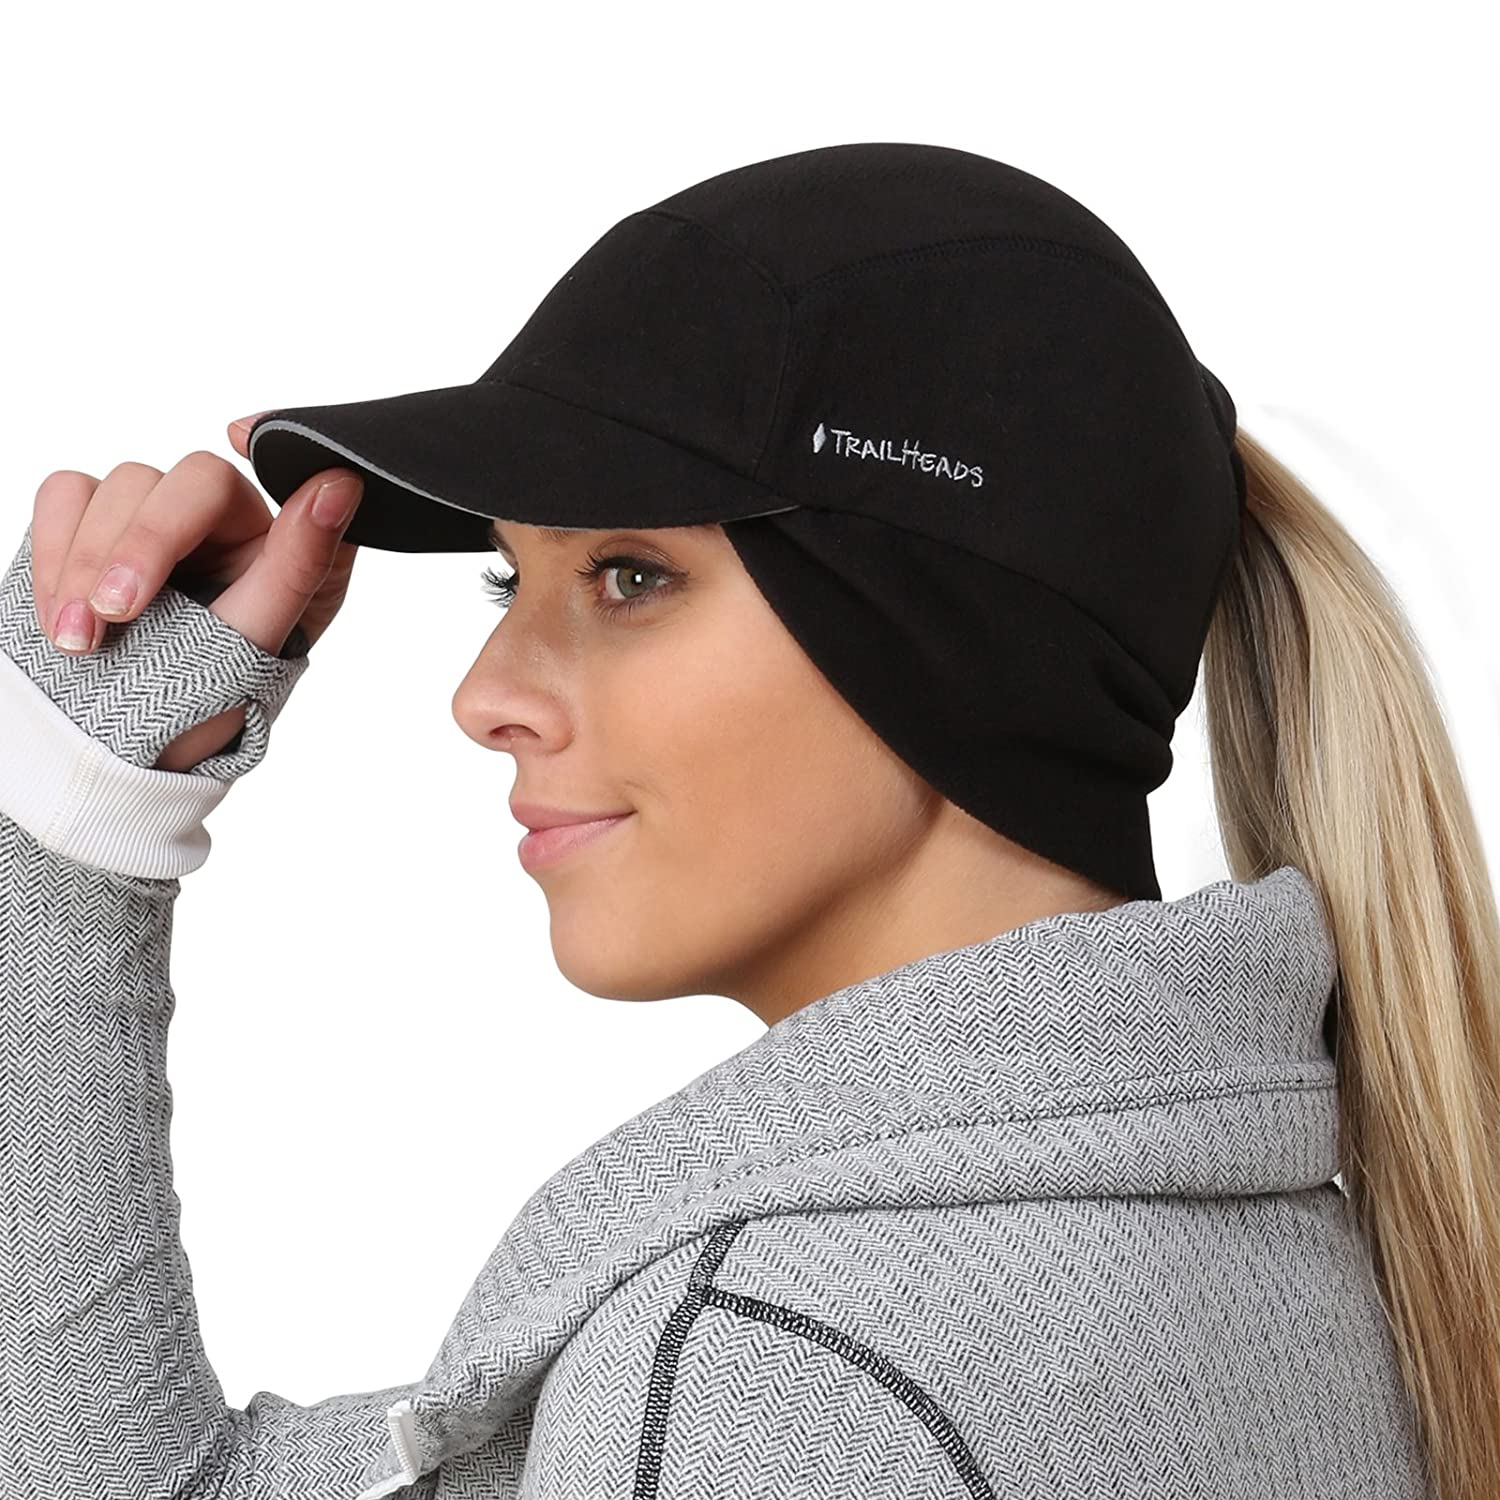 TrailHeads Fleece Ponytail Cap Drop Down Ear Warmer | The Trailblazer Adventure Hat Women Black One Size